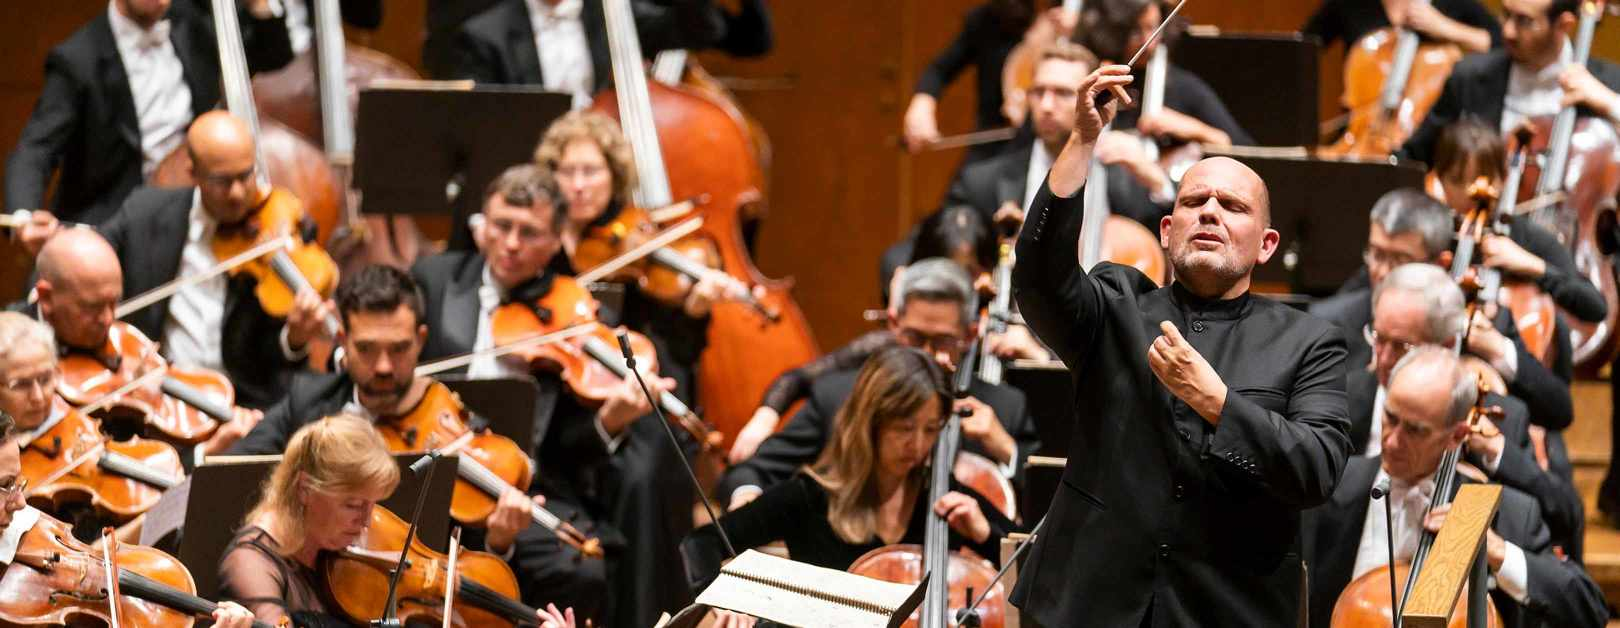 Bravo! Vail: Van Zweden Conducts Shostakovich and Beethoven